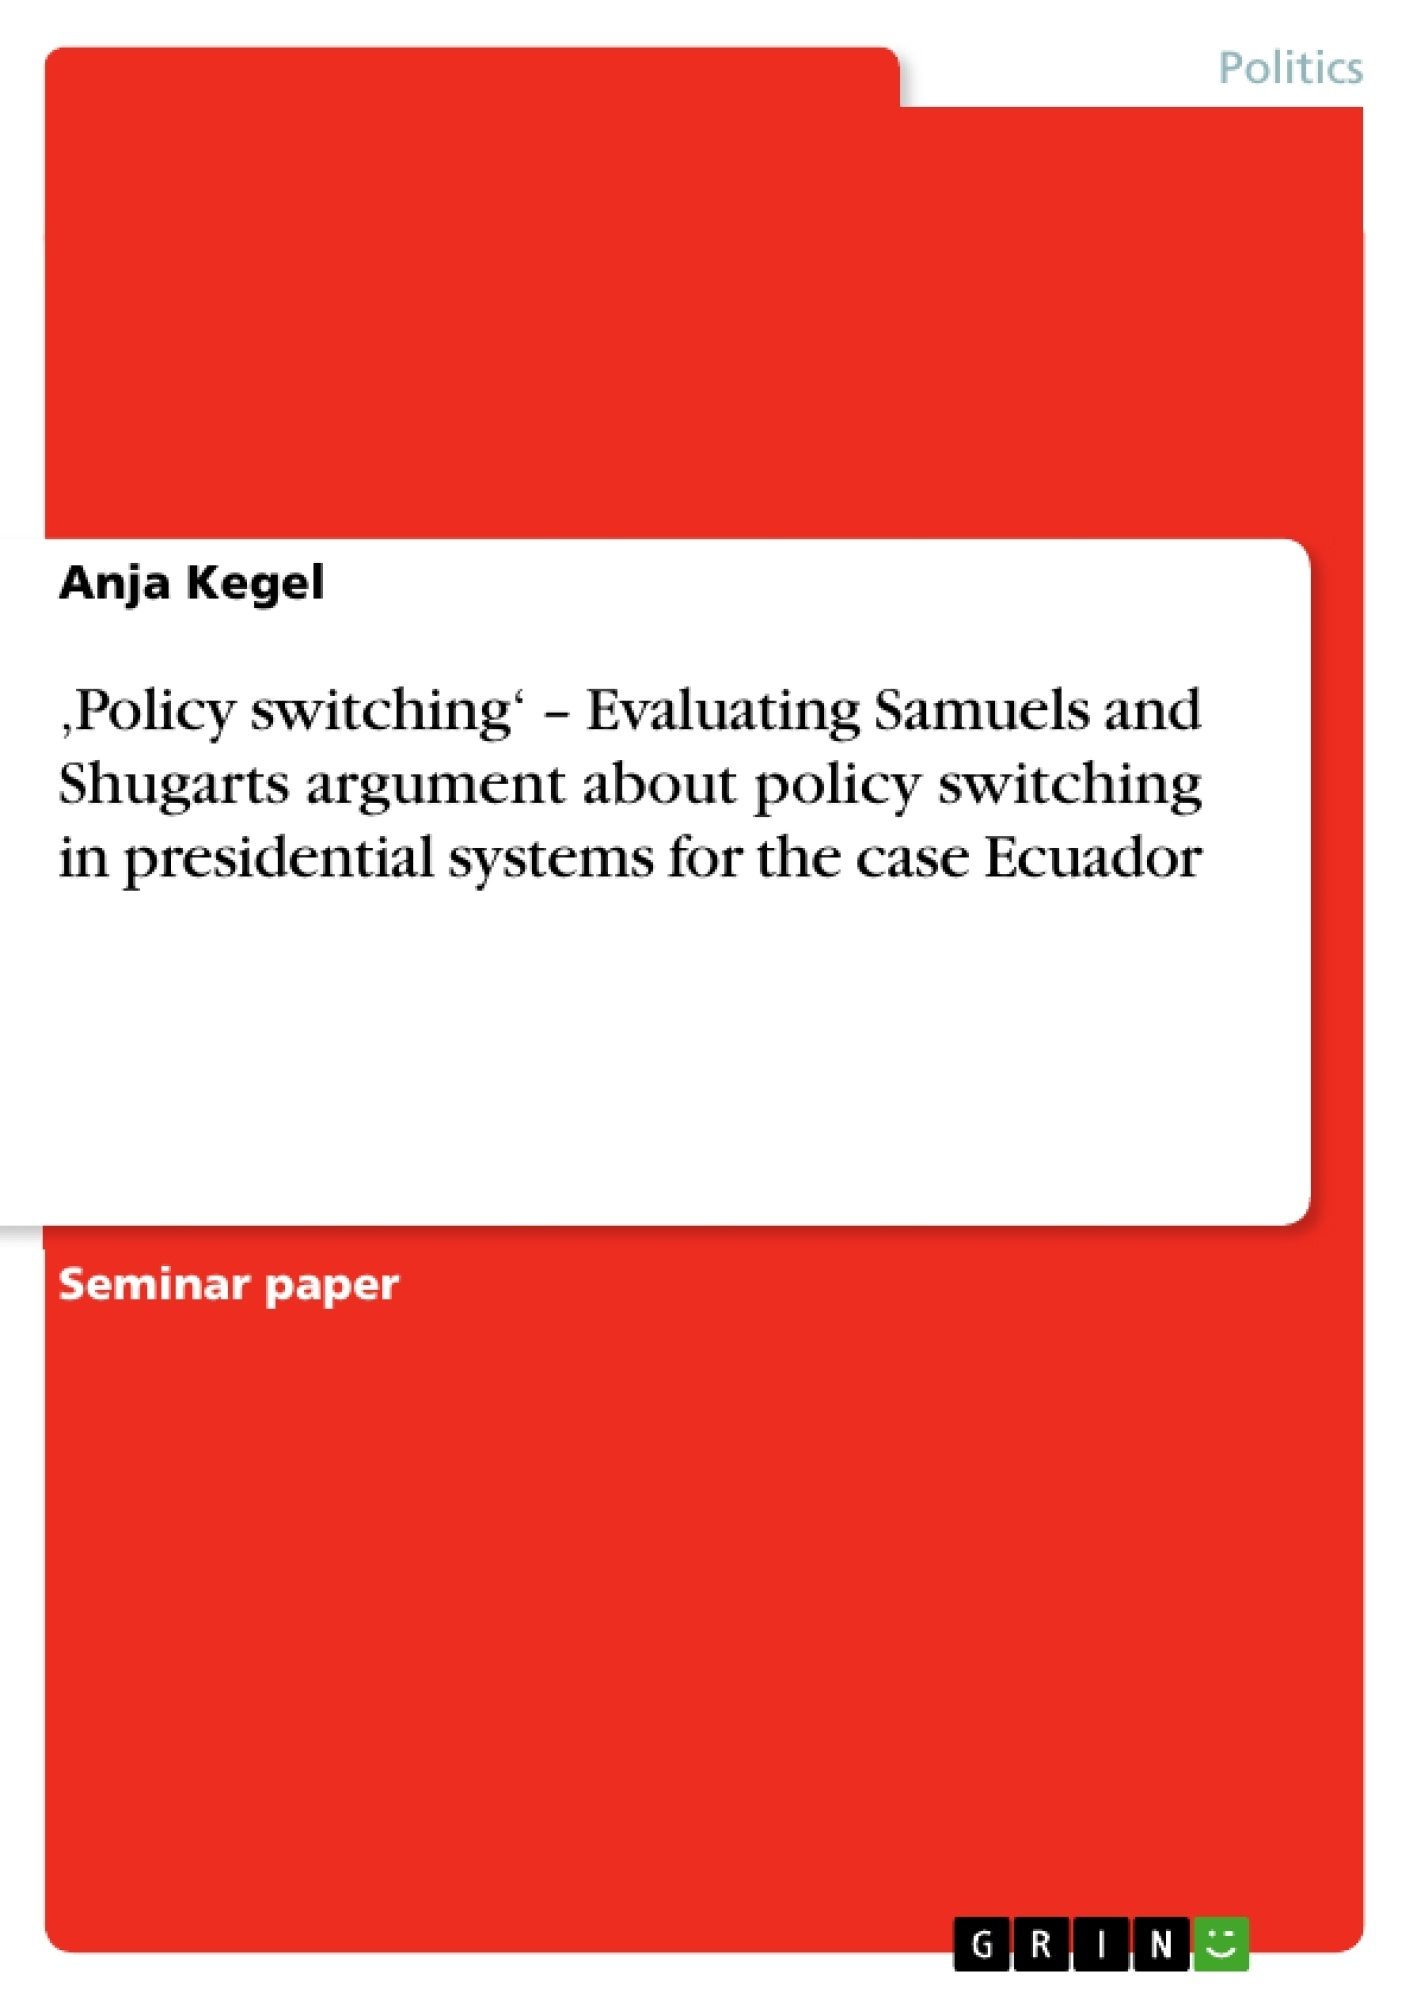 Title: 'Policy switching' – Evaluating Samuels and Shugarts argument about policy switching in presidential systems for the case Ecuador